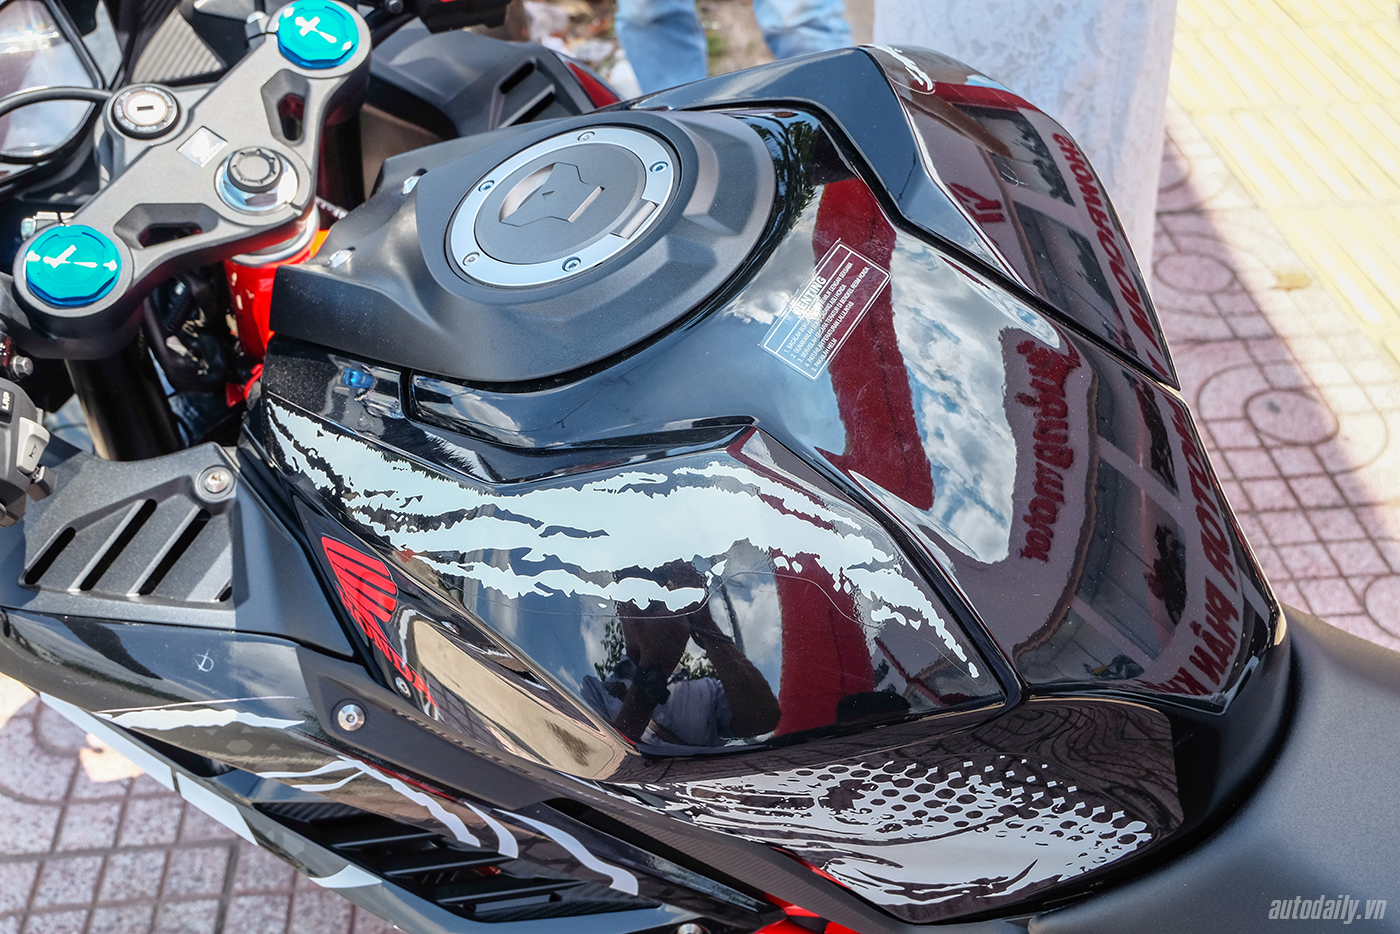 honda-cbr250rr-the-art-of-kabuki-2017-20.jpg